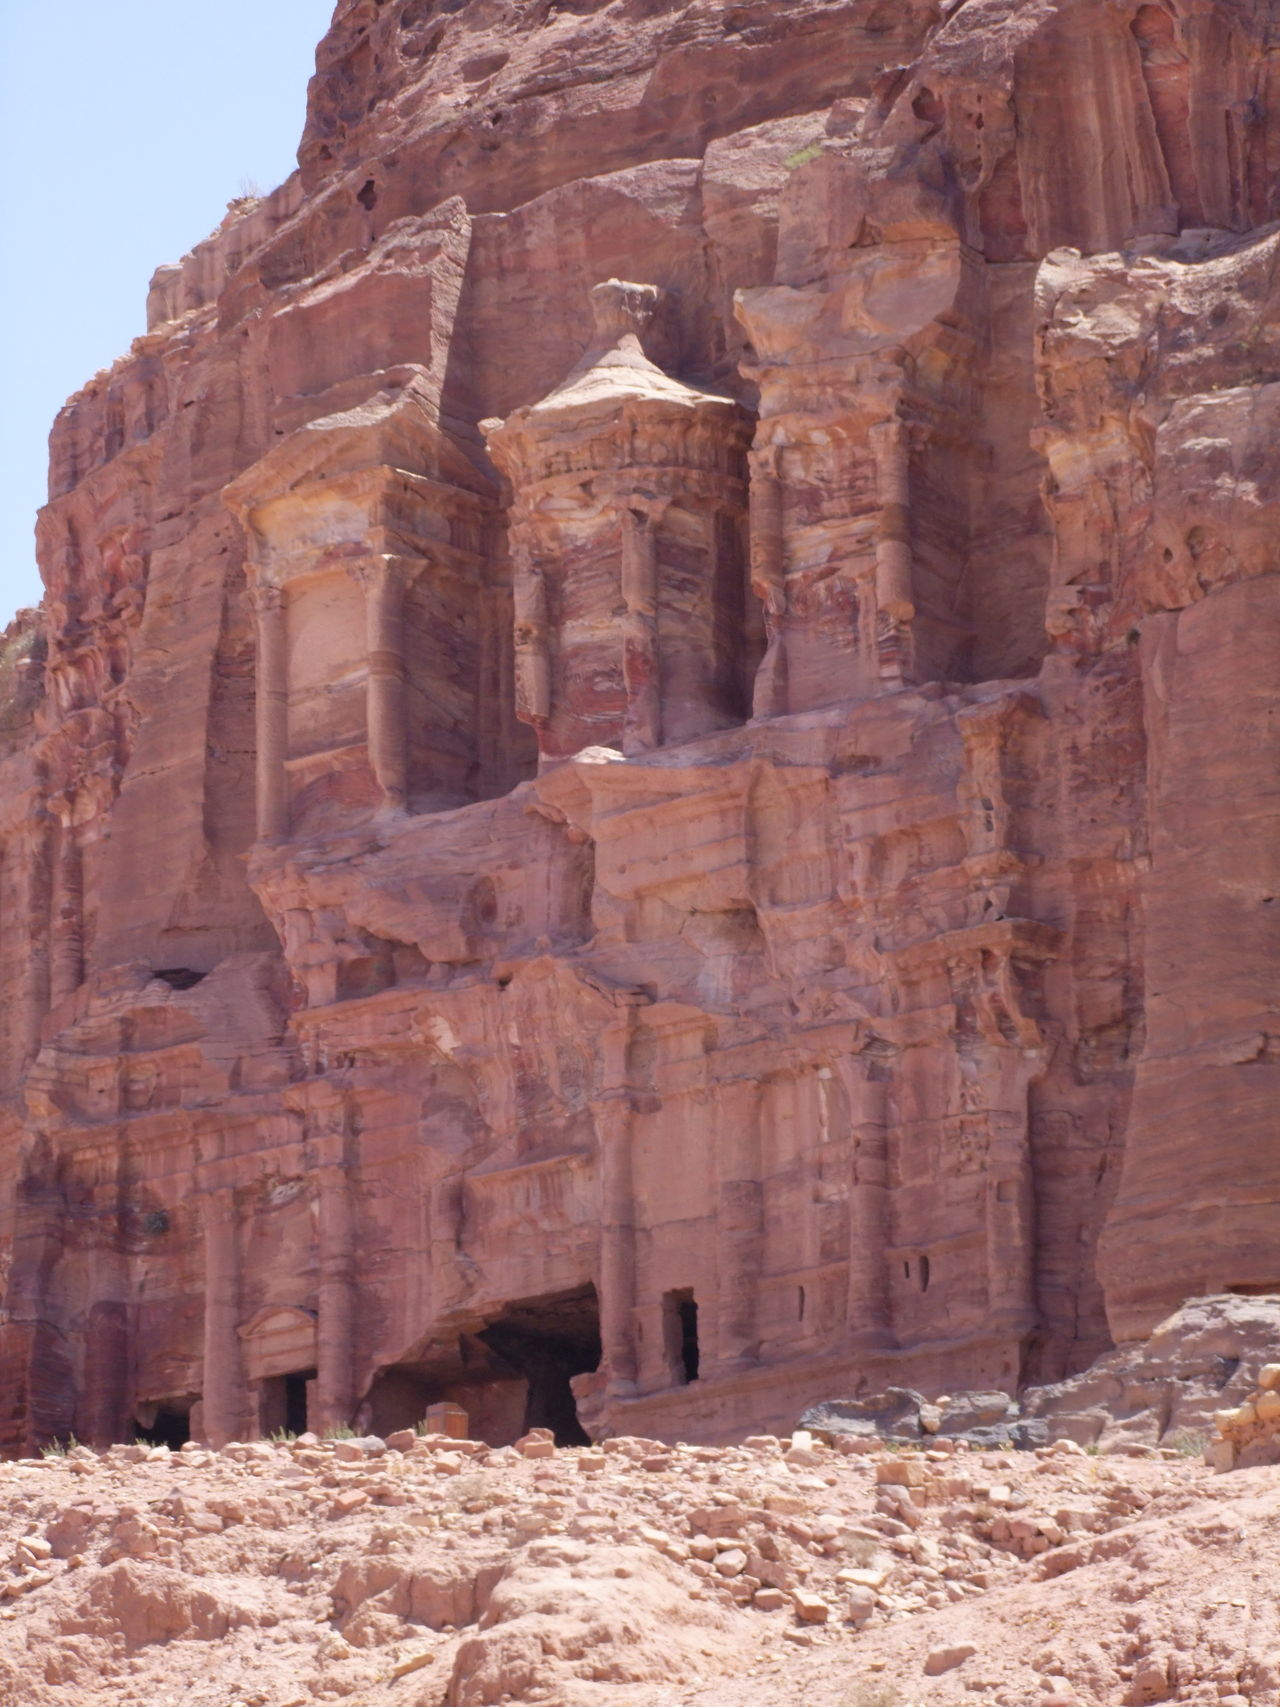 Silk Tomb Ancient Ancient Civilization Antiquity Archaeology Arid Climate Arid Landscape Blue Sky Composition Famous Place Full Frame Geology History Jordan Nabatean No People Old Ruin Outdoor Photography Photography Rose Red Sandstone Sandstone Cliffs Sunlight And Shade Tomb Tourist Attraction  Tourist Destination